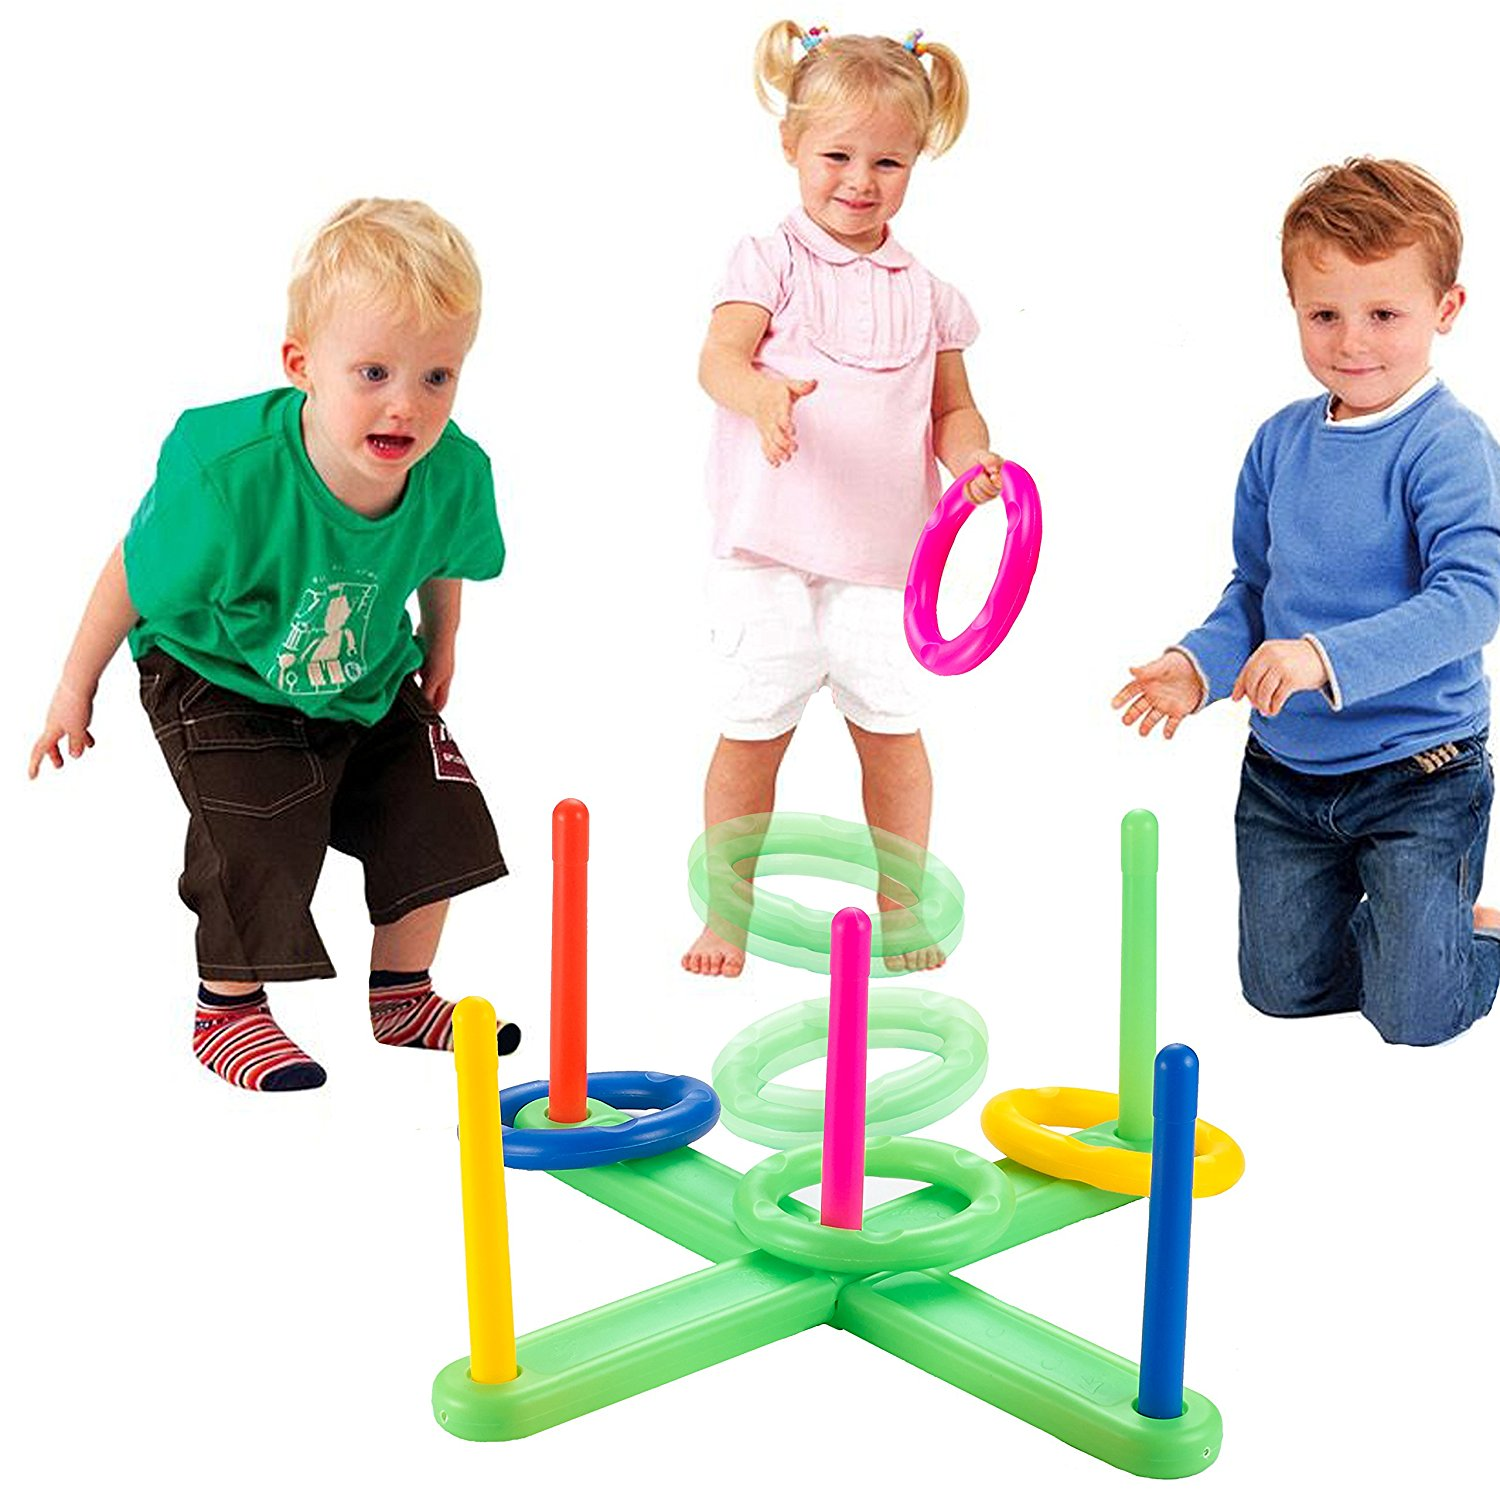 Mini Horse Outdoor Kids Games - Ring Toss Games for Kids and Outdoor Toys Keep Kids Active - Easy to Assemble - Fun Family Games for Kids and Adults,Gift for Kids 4-15 Years Old